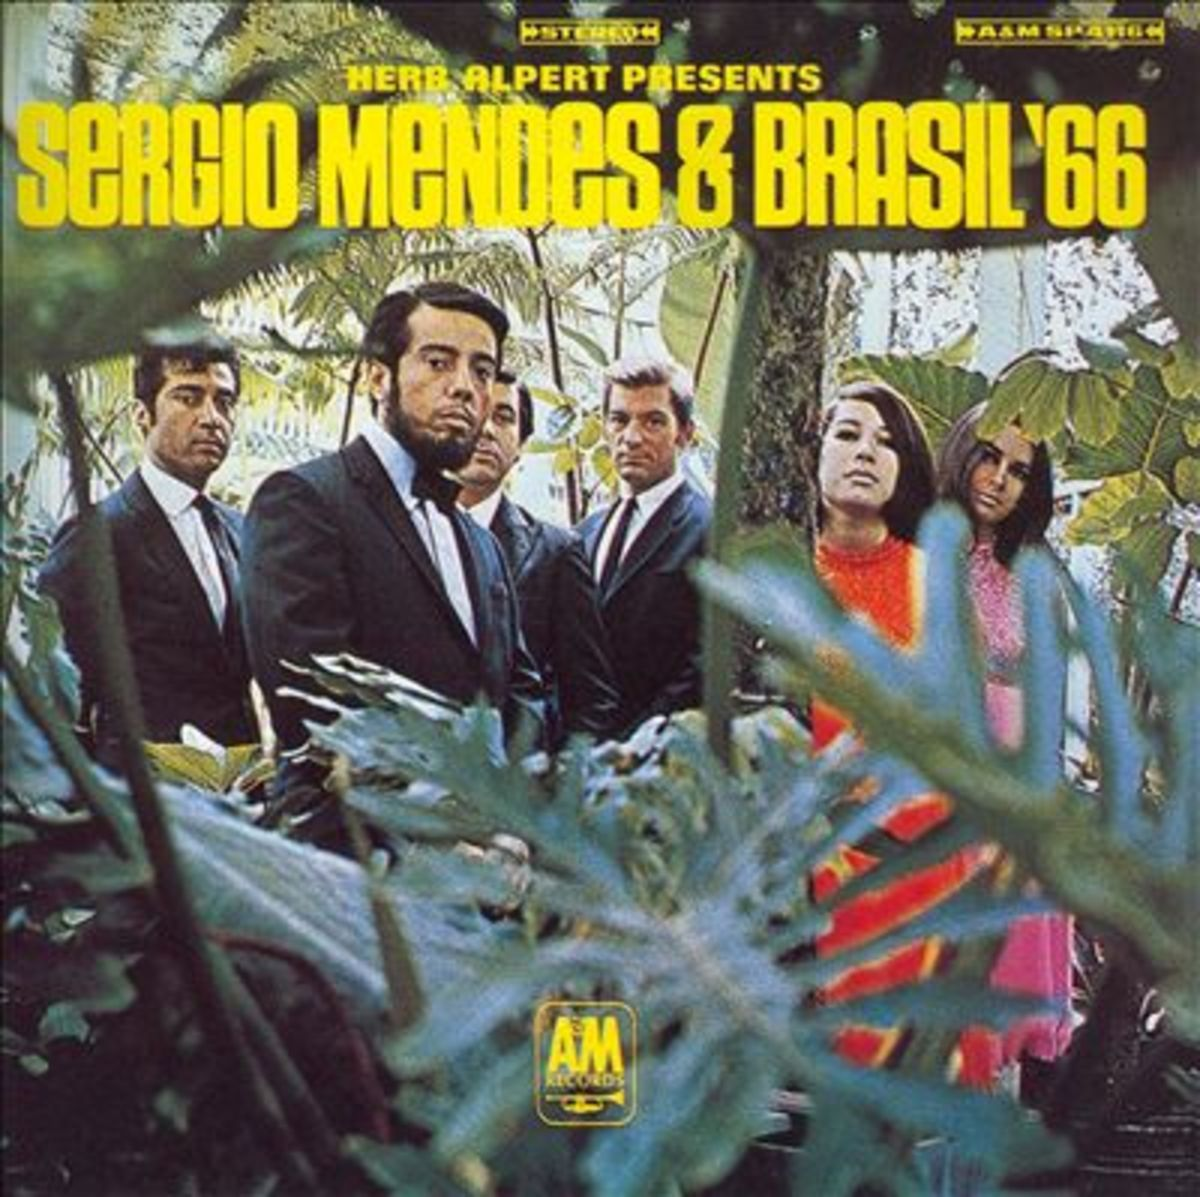 Sergio Mendes & Brasil 66 Feature in Season 6